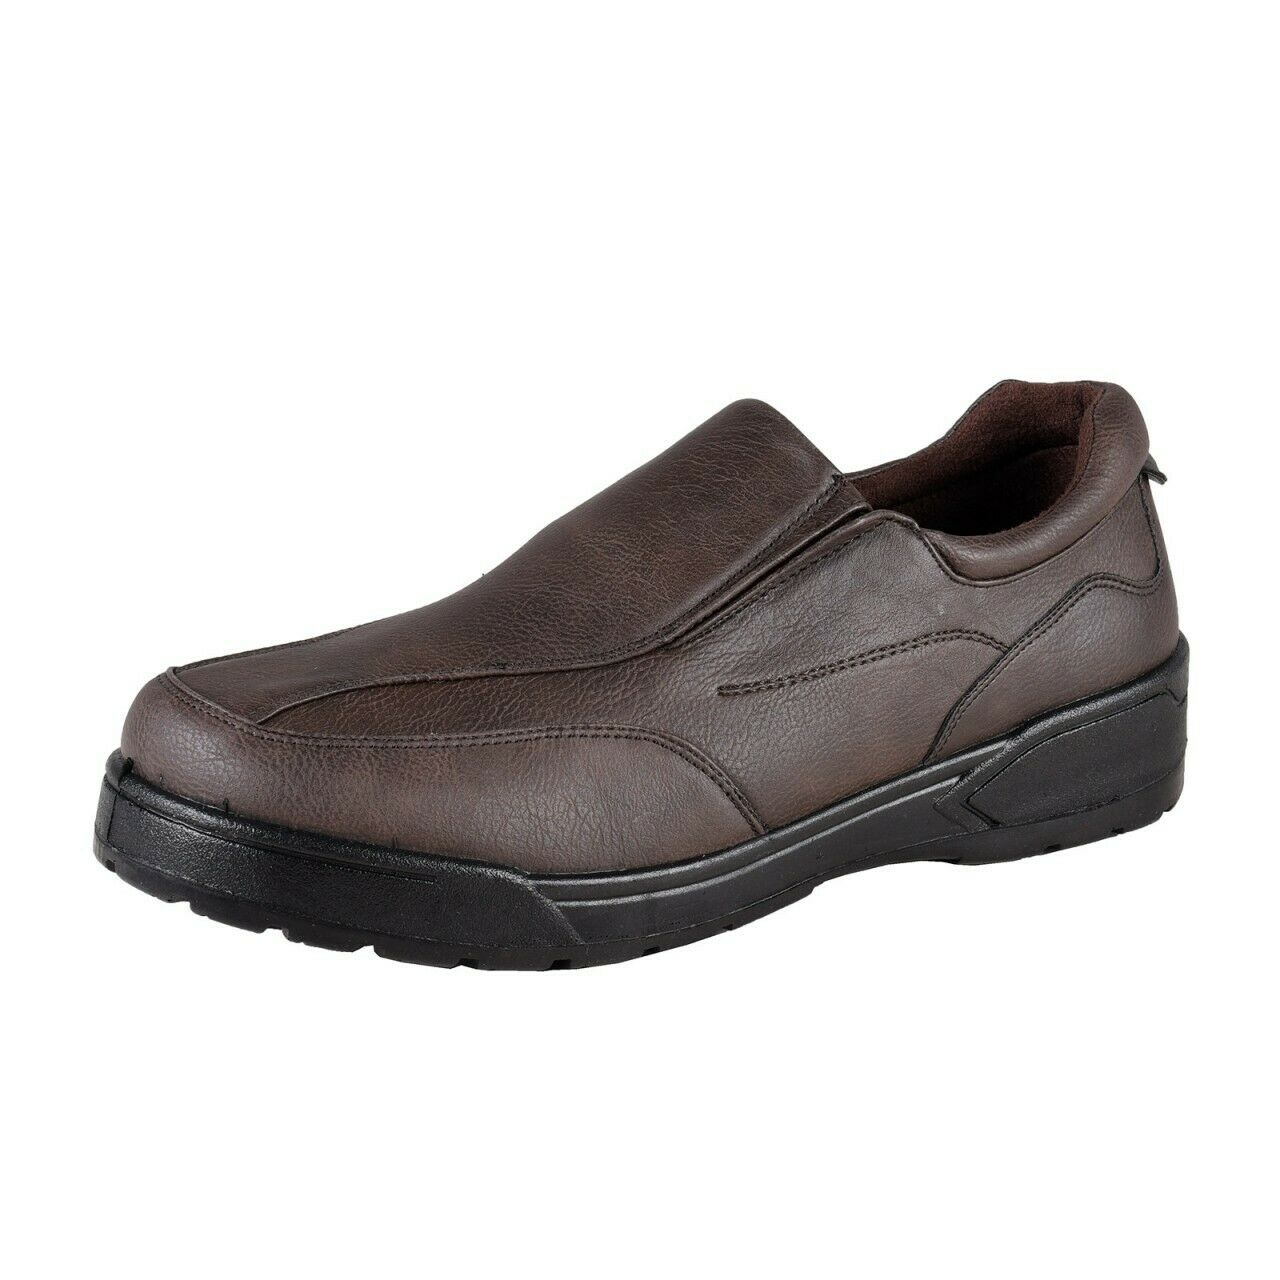 Mario Bucelli Men's Slip on shoes Comfortable Casual shoes New, Dark Brown